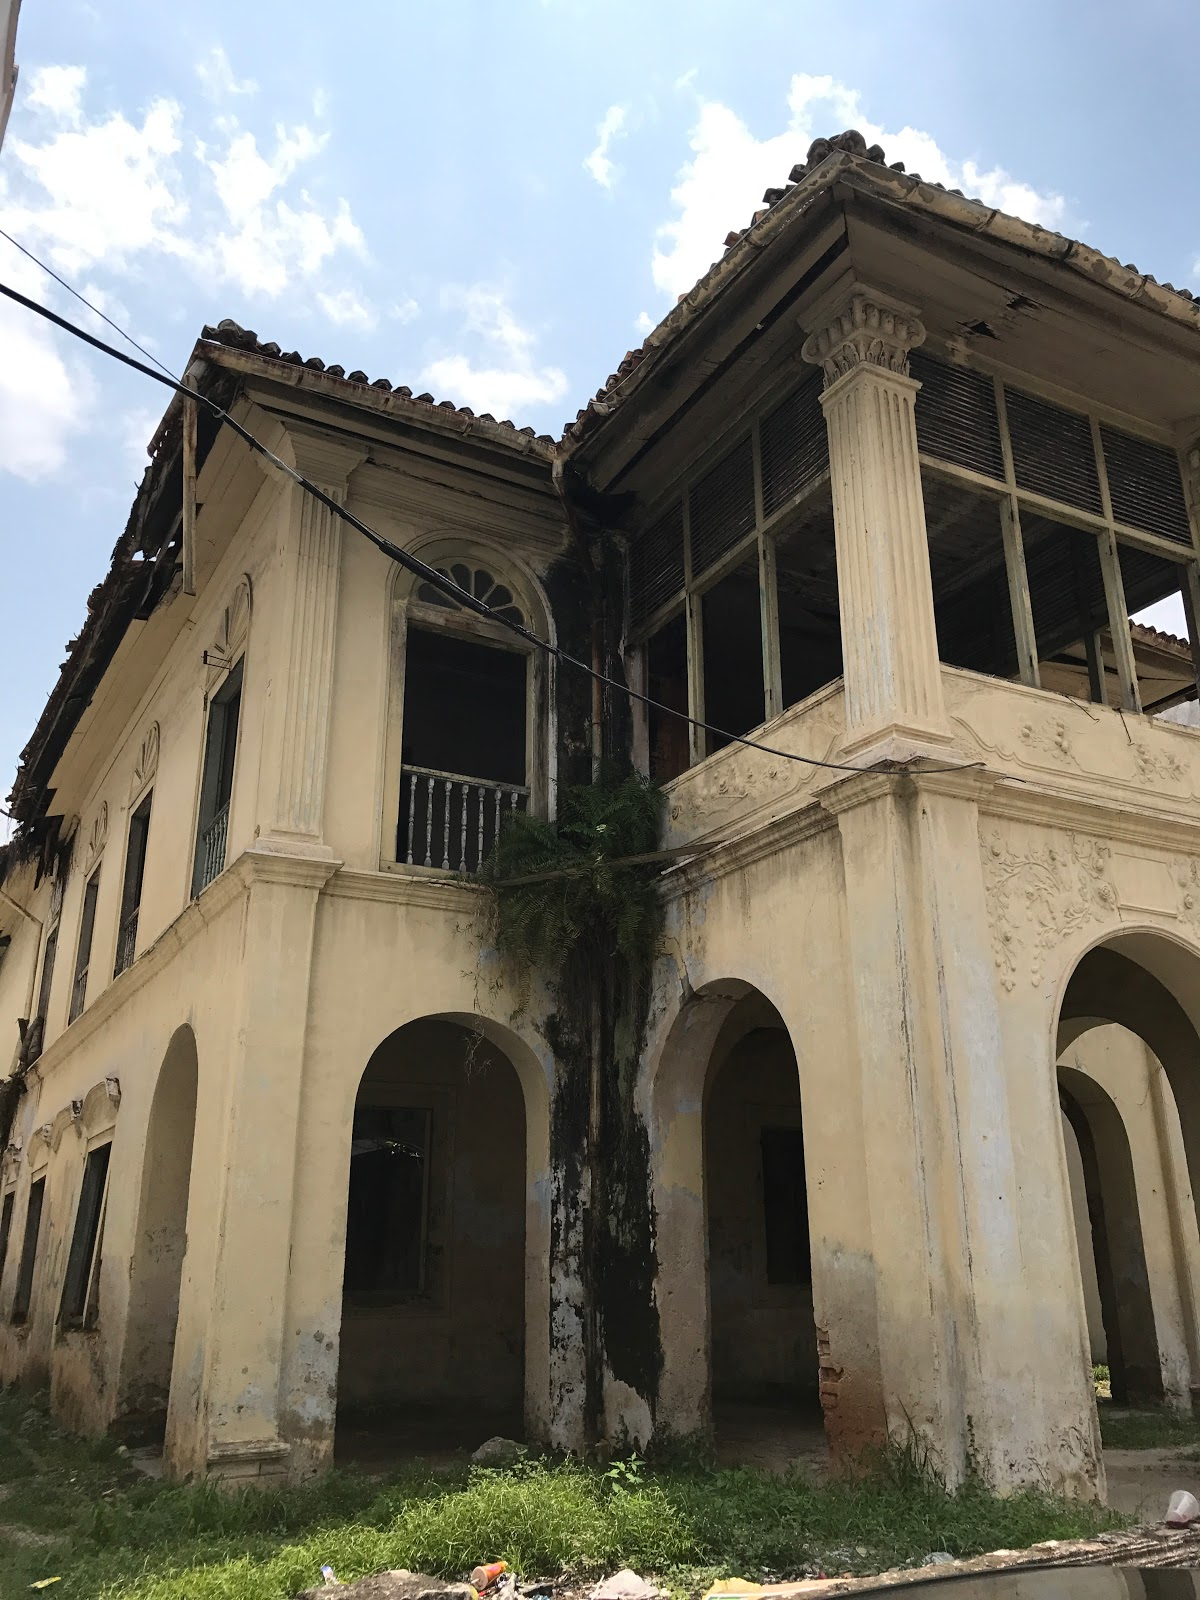 ABANDONED BUILDING IN MALACCA | URBAN ARCHITECTURE NOW